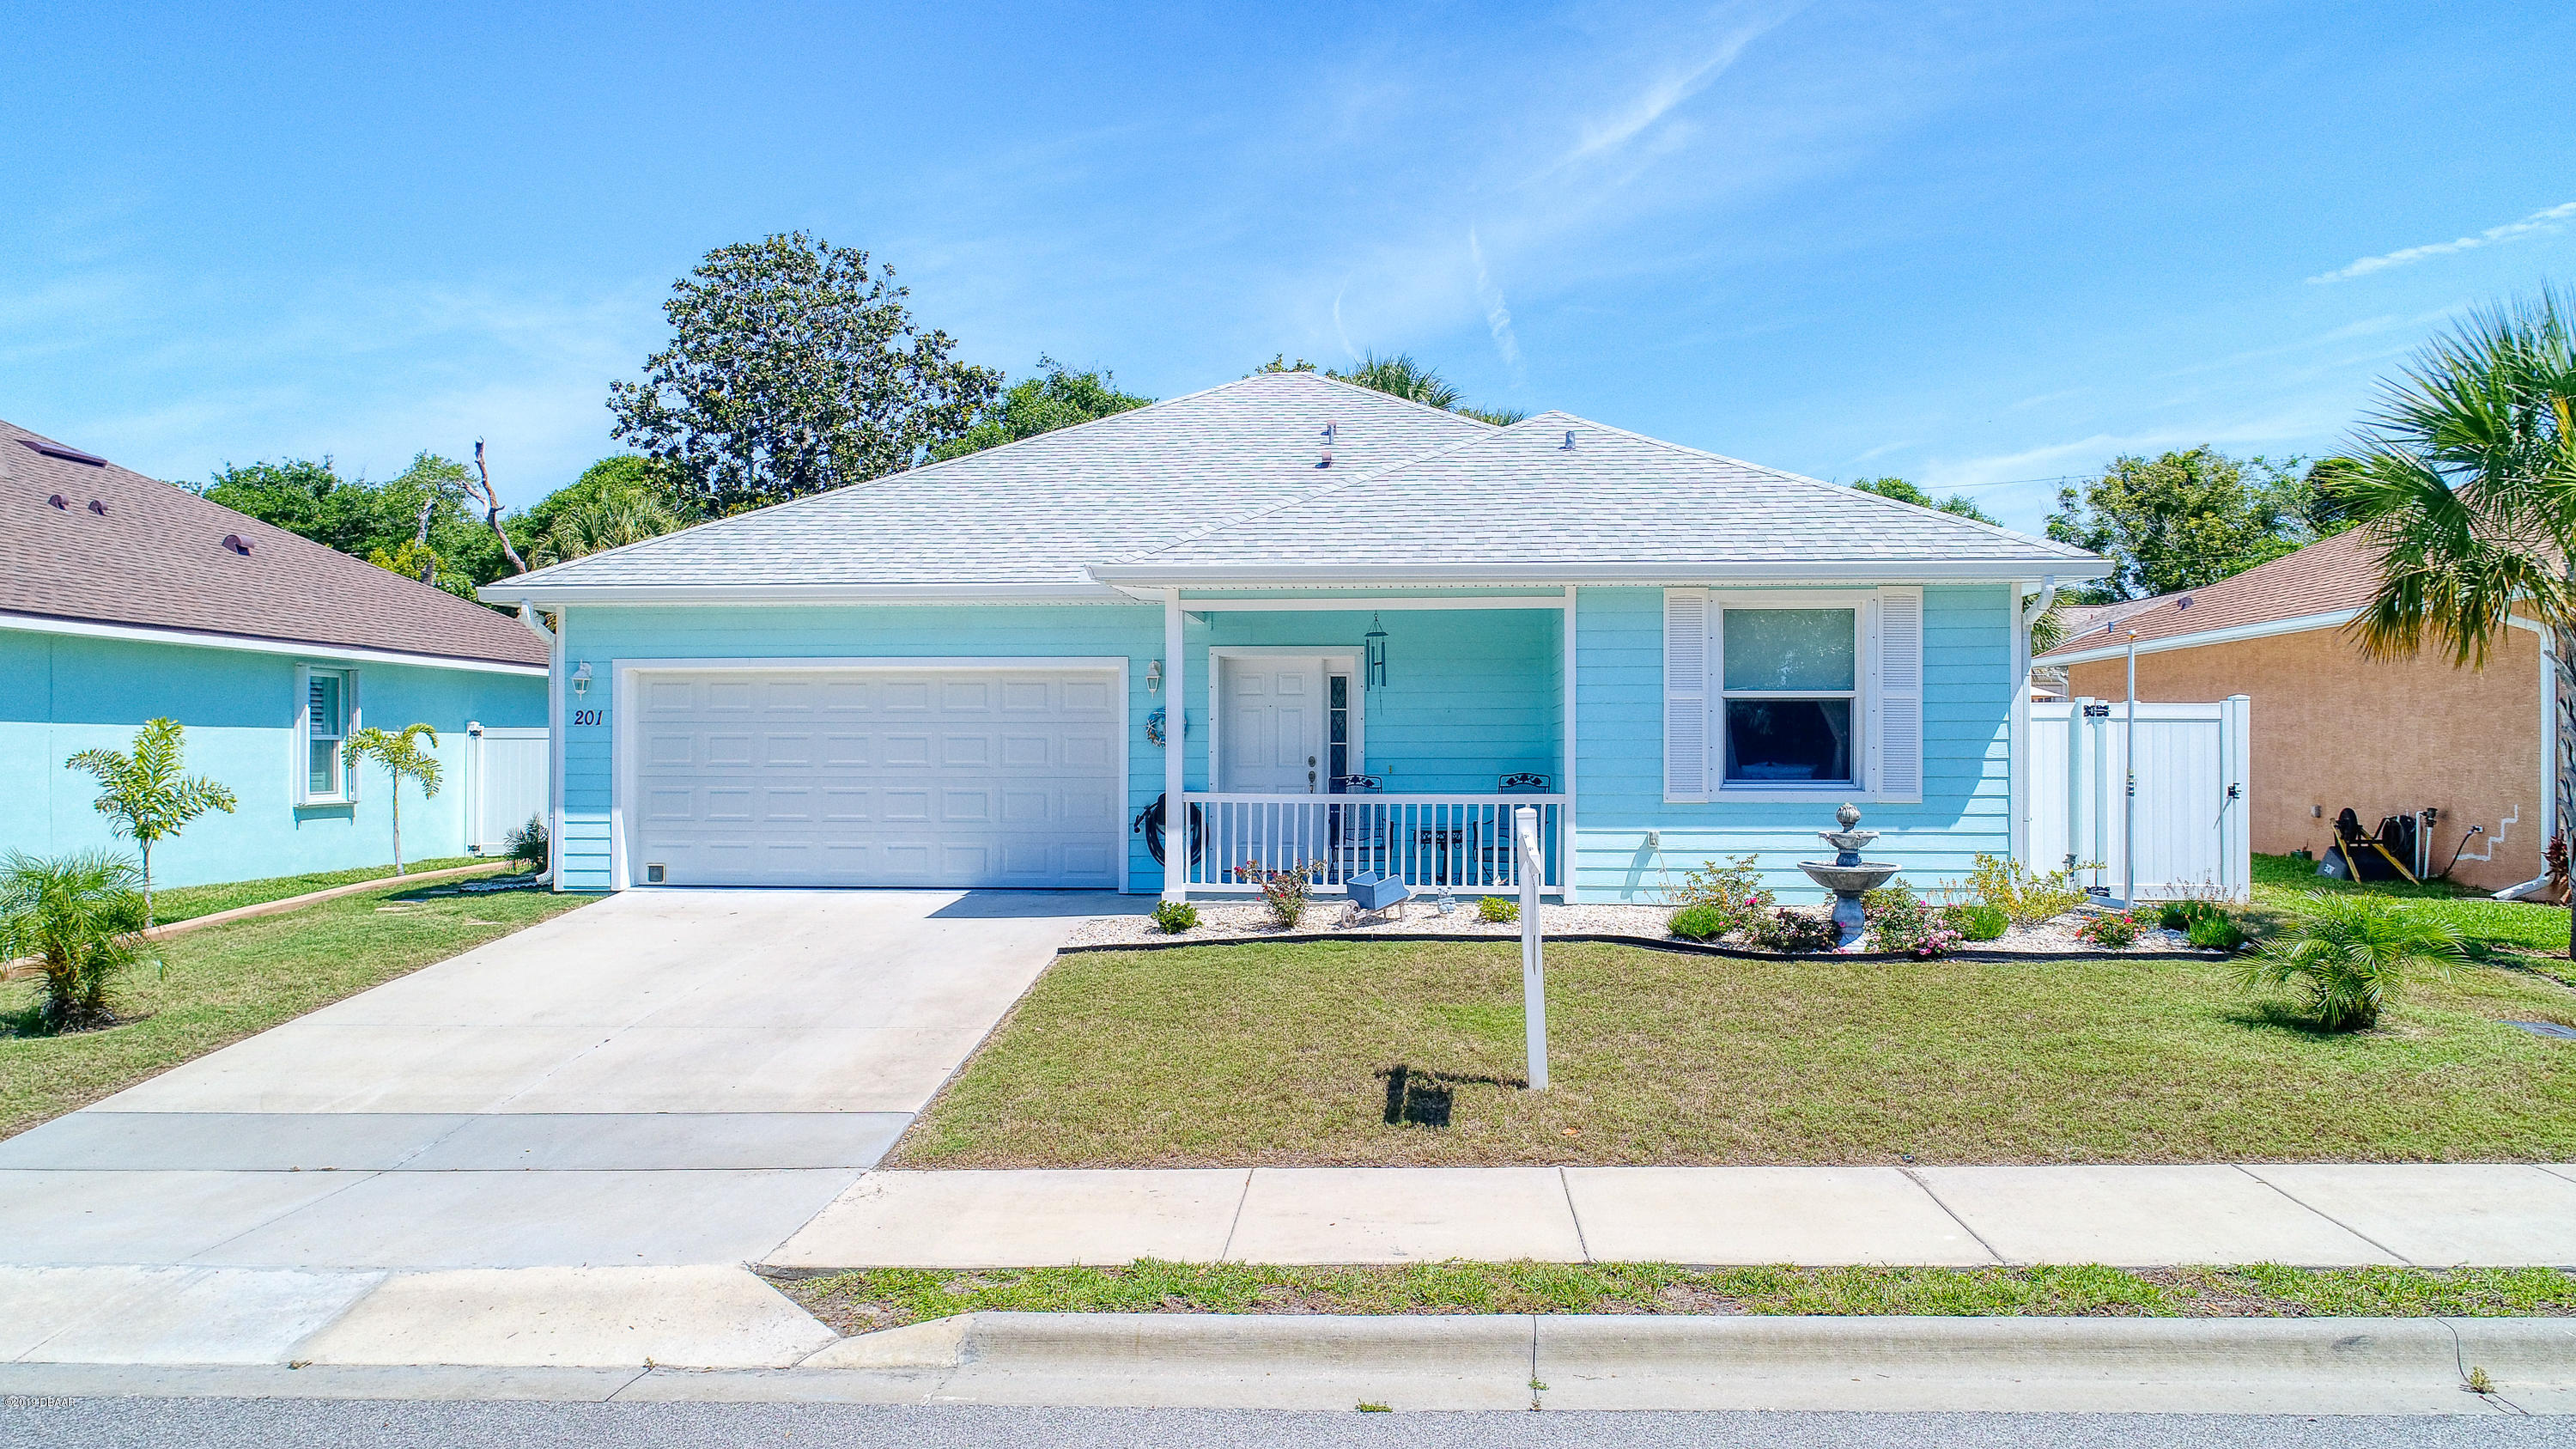 201 Sunrise Cove Circle 32176 - One of Ormond Beach Homes for Sale